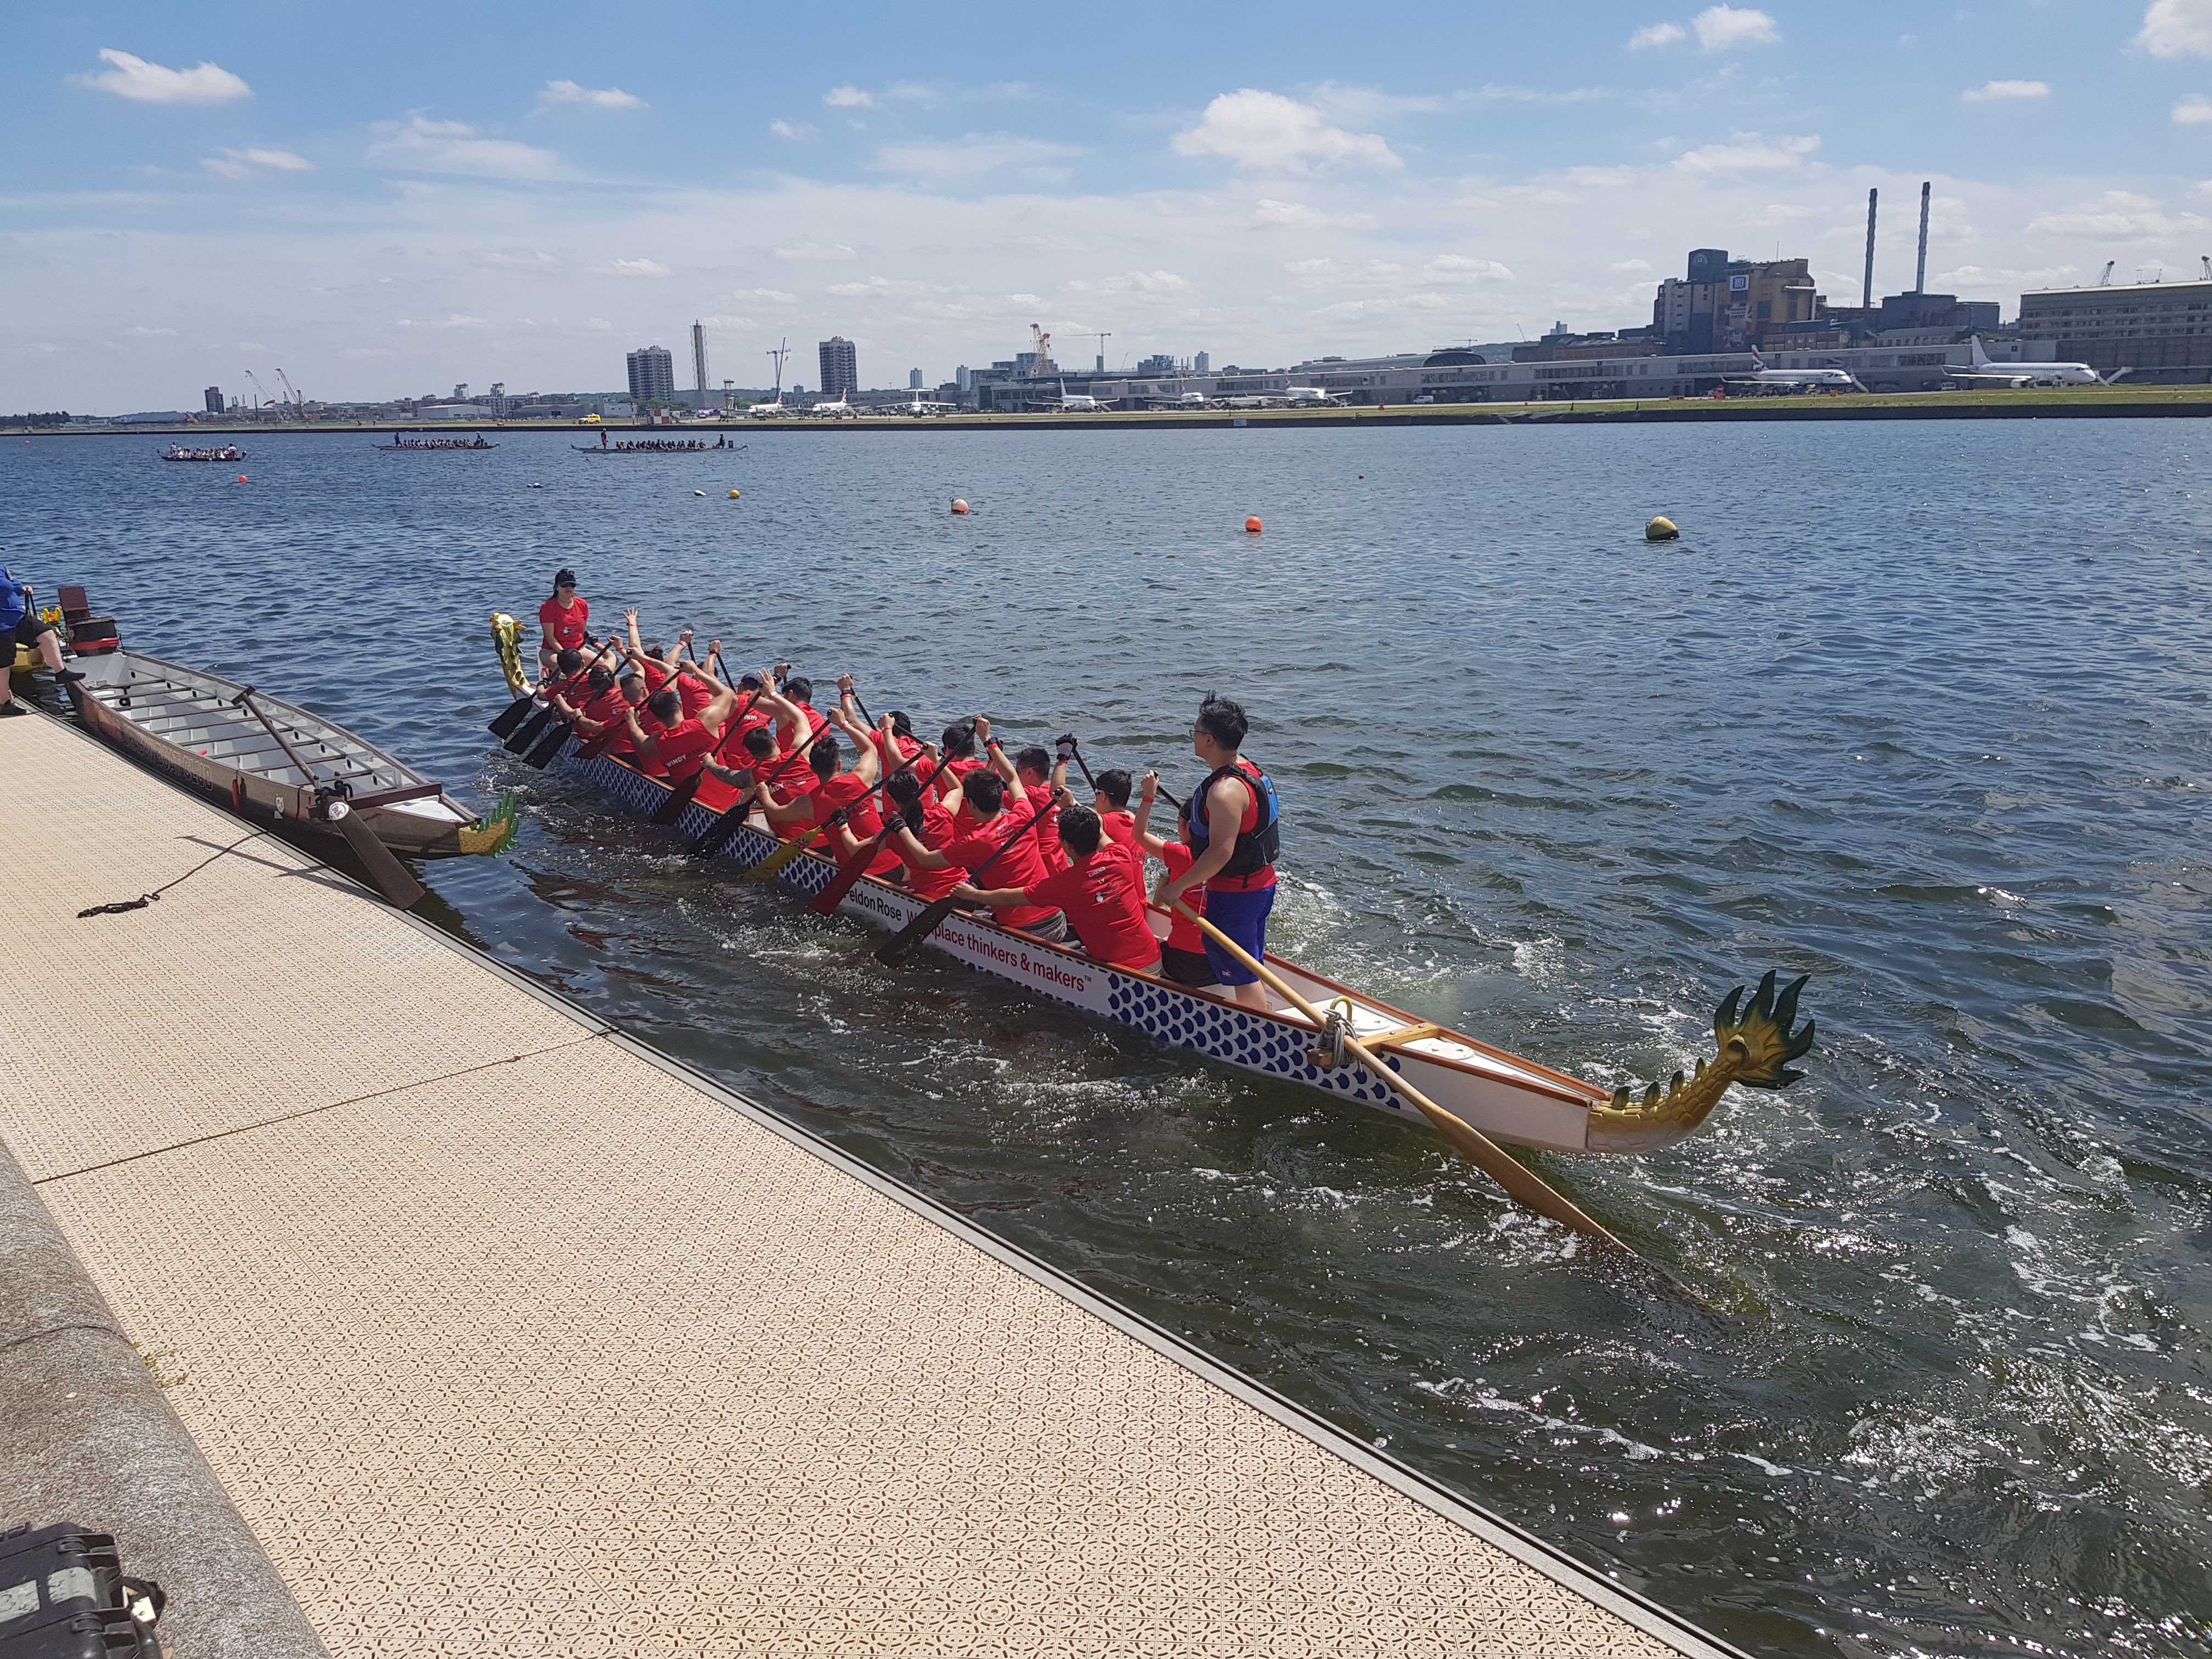 The Windy Pandas team on the water in the Royal Docks